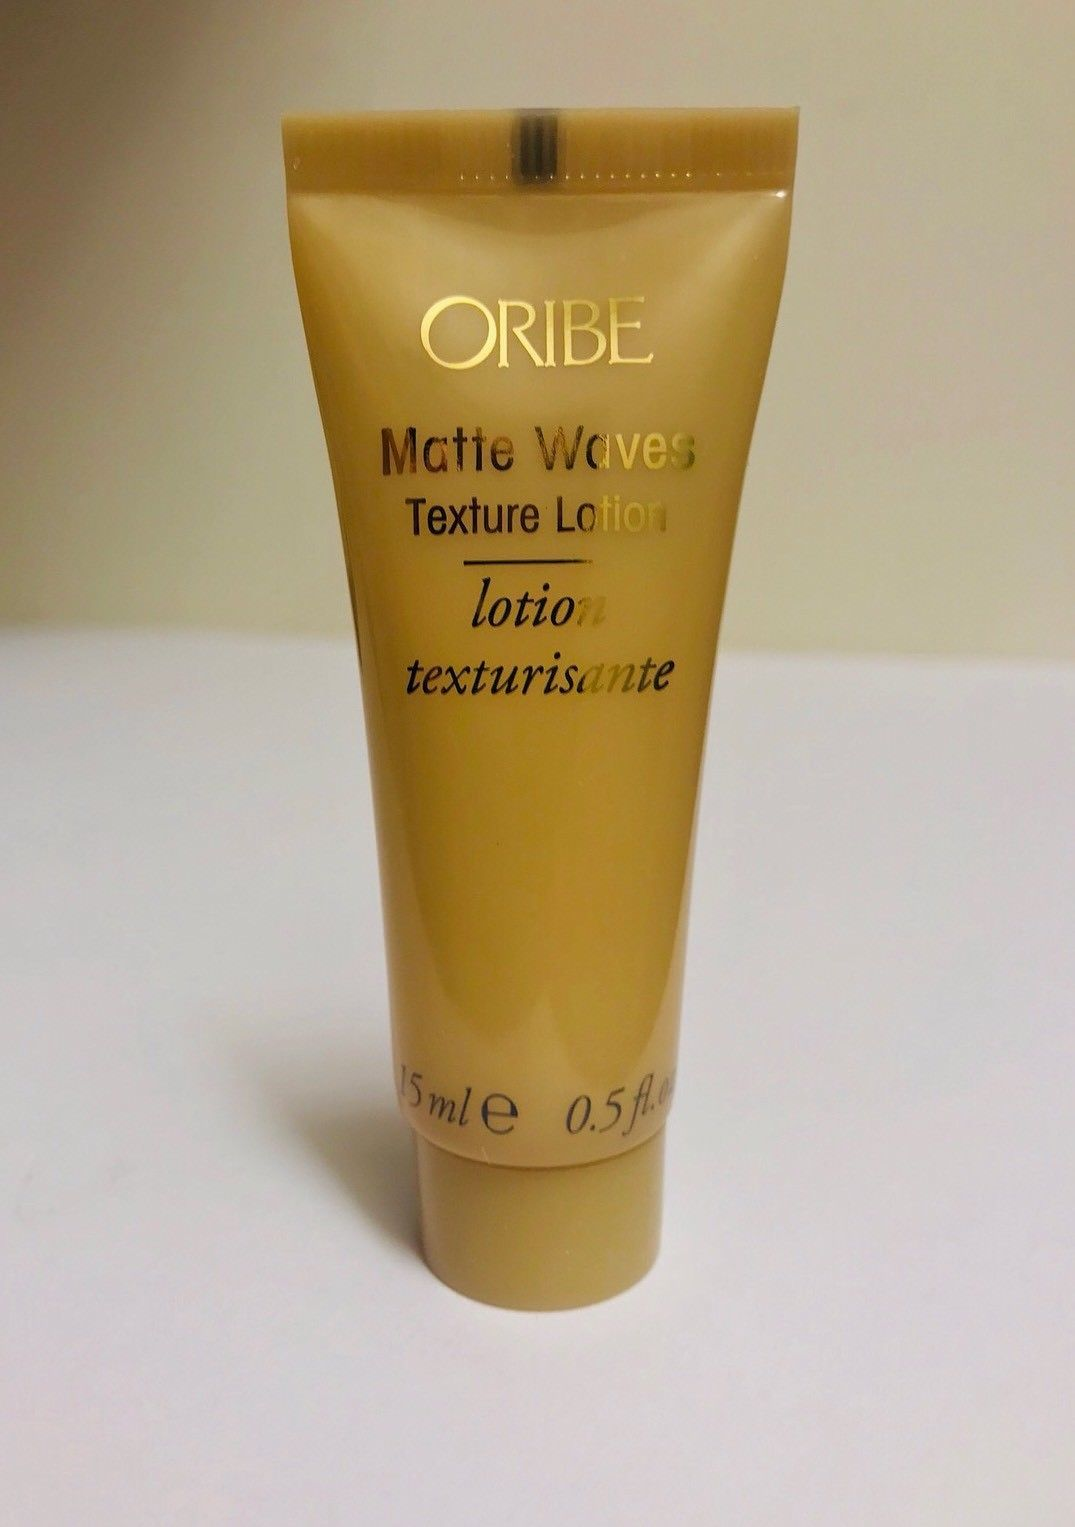 ORIBE Matte Waves Texture Lotion, Travel Size ~ 0.5 oz; Brand New! ❤️ - $9.99